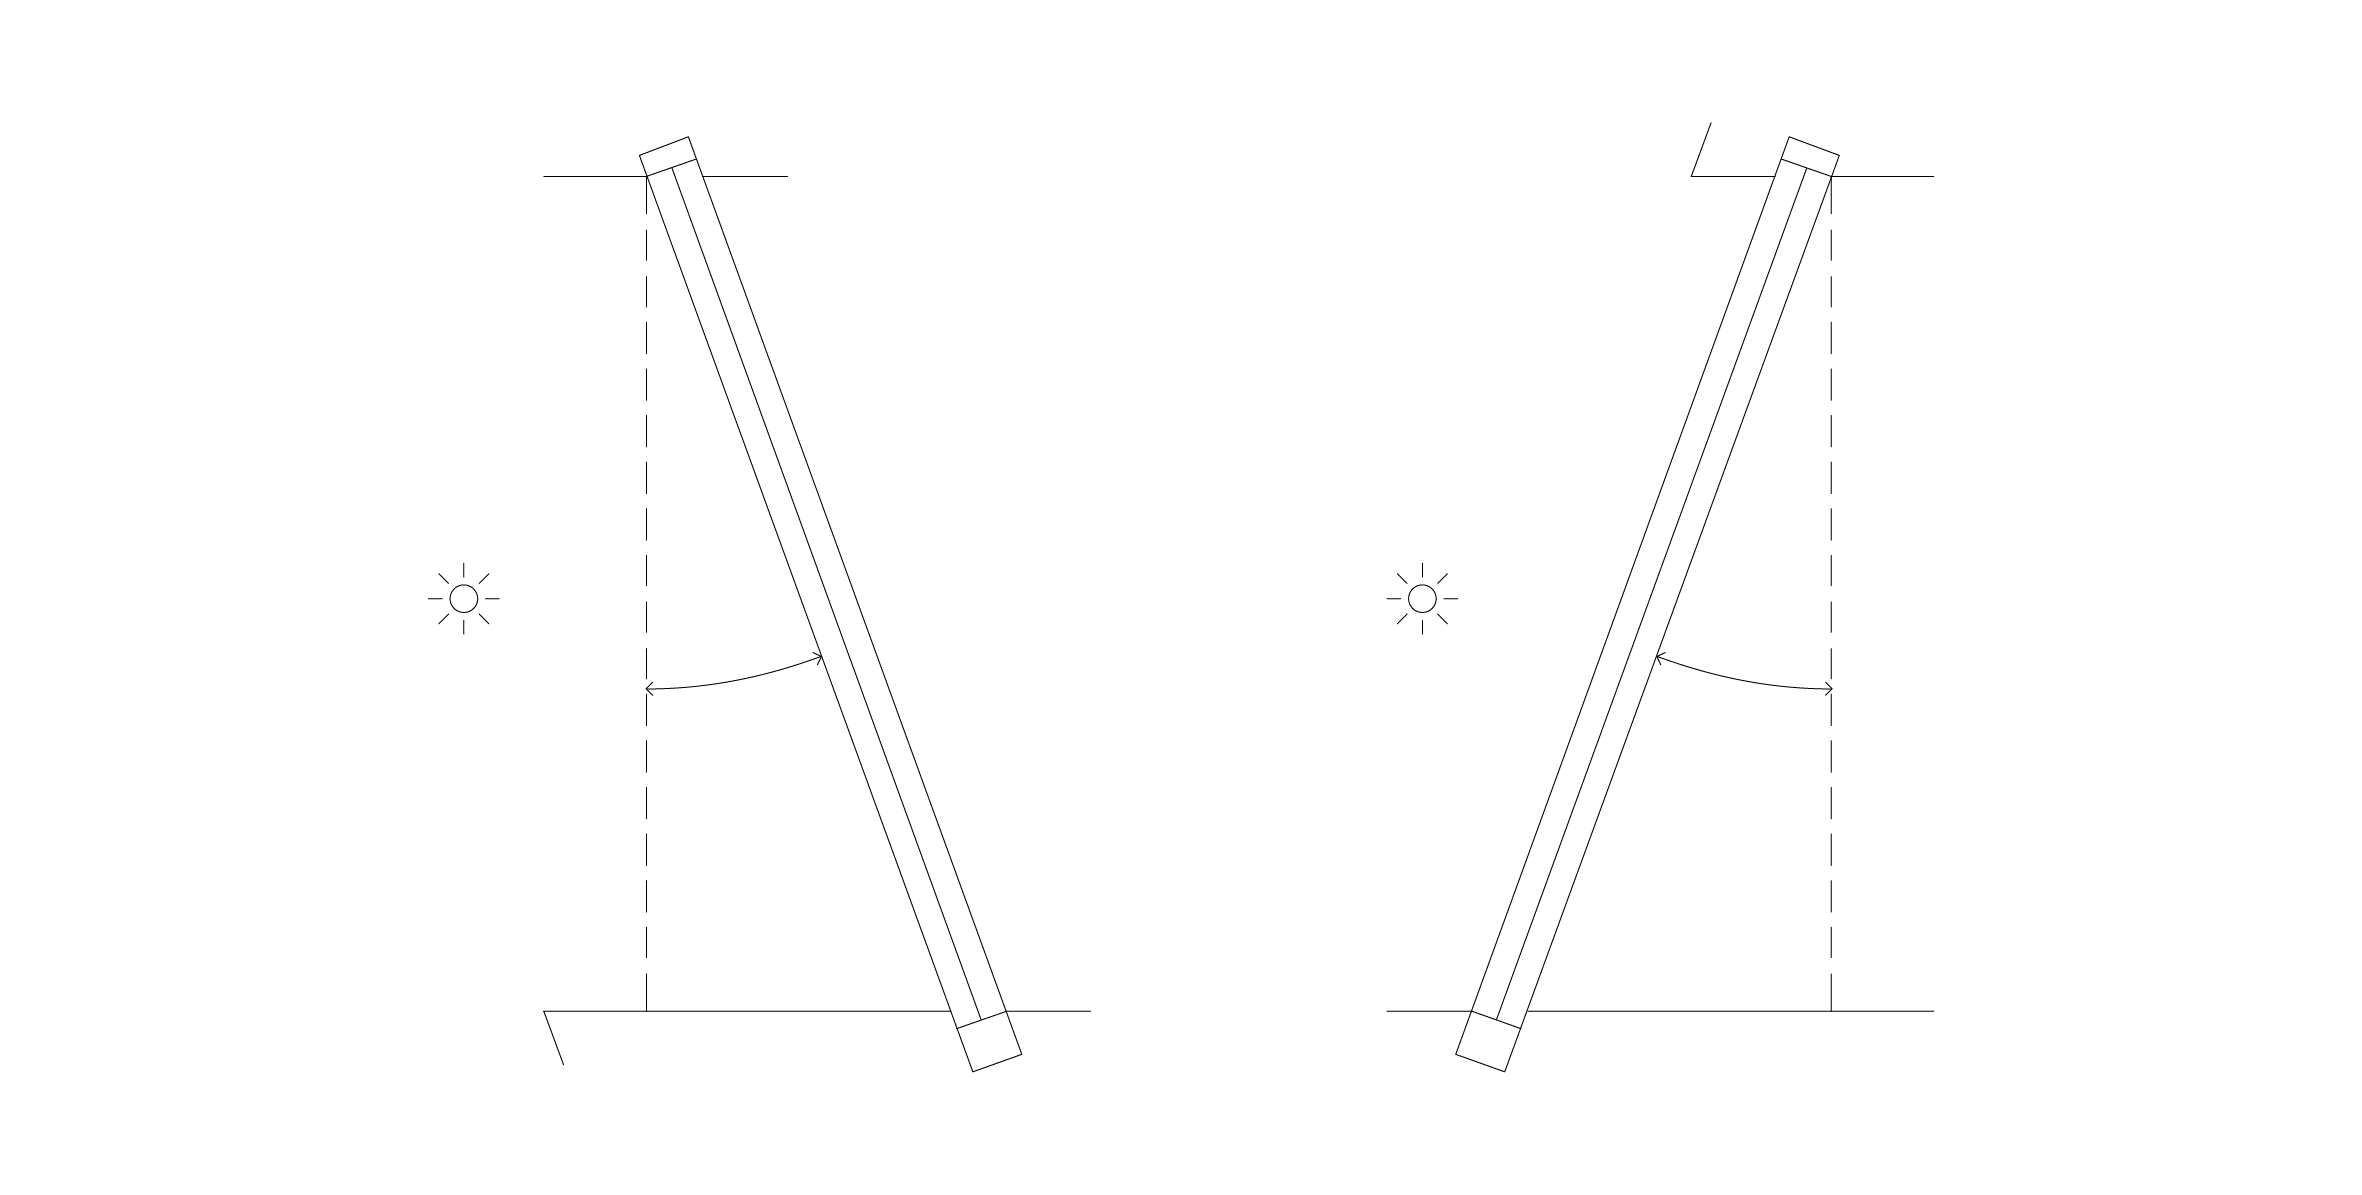 Technical Drawing Sky Frame Slope.png 2362x1195 Q90 Subsampling 2